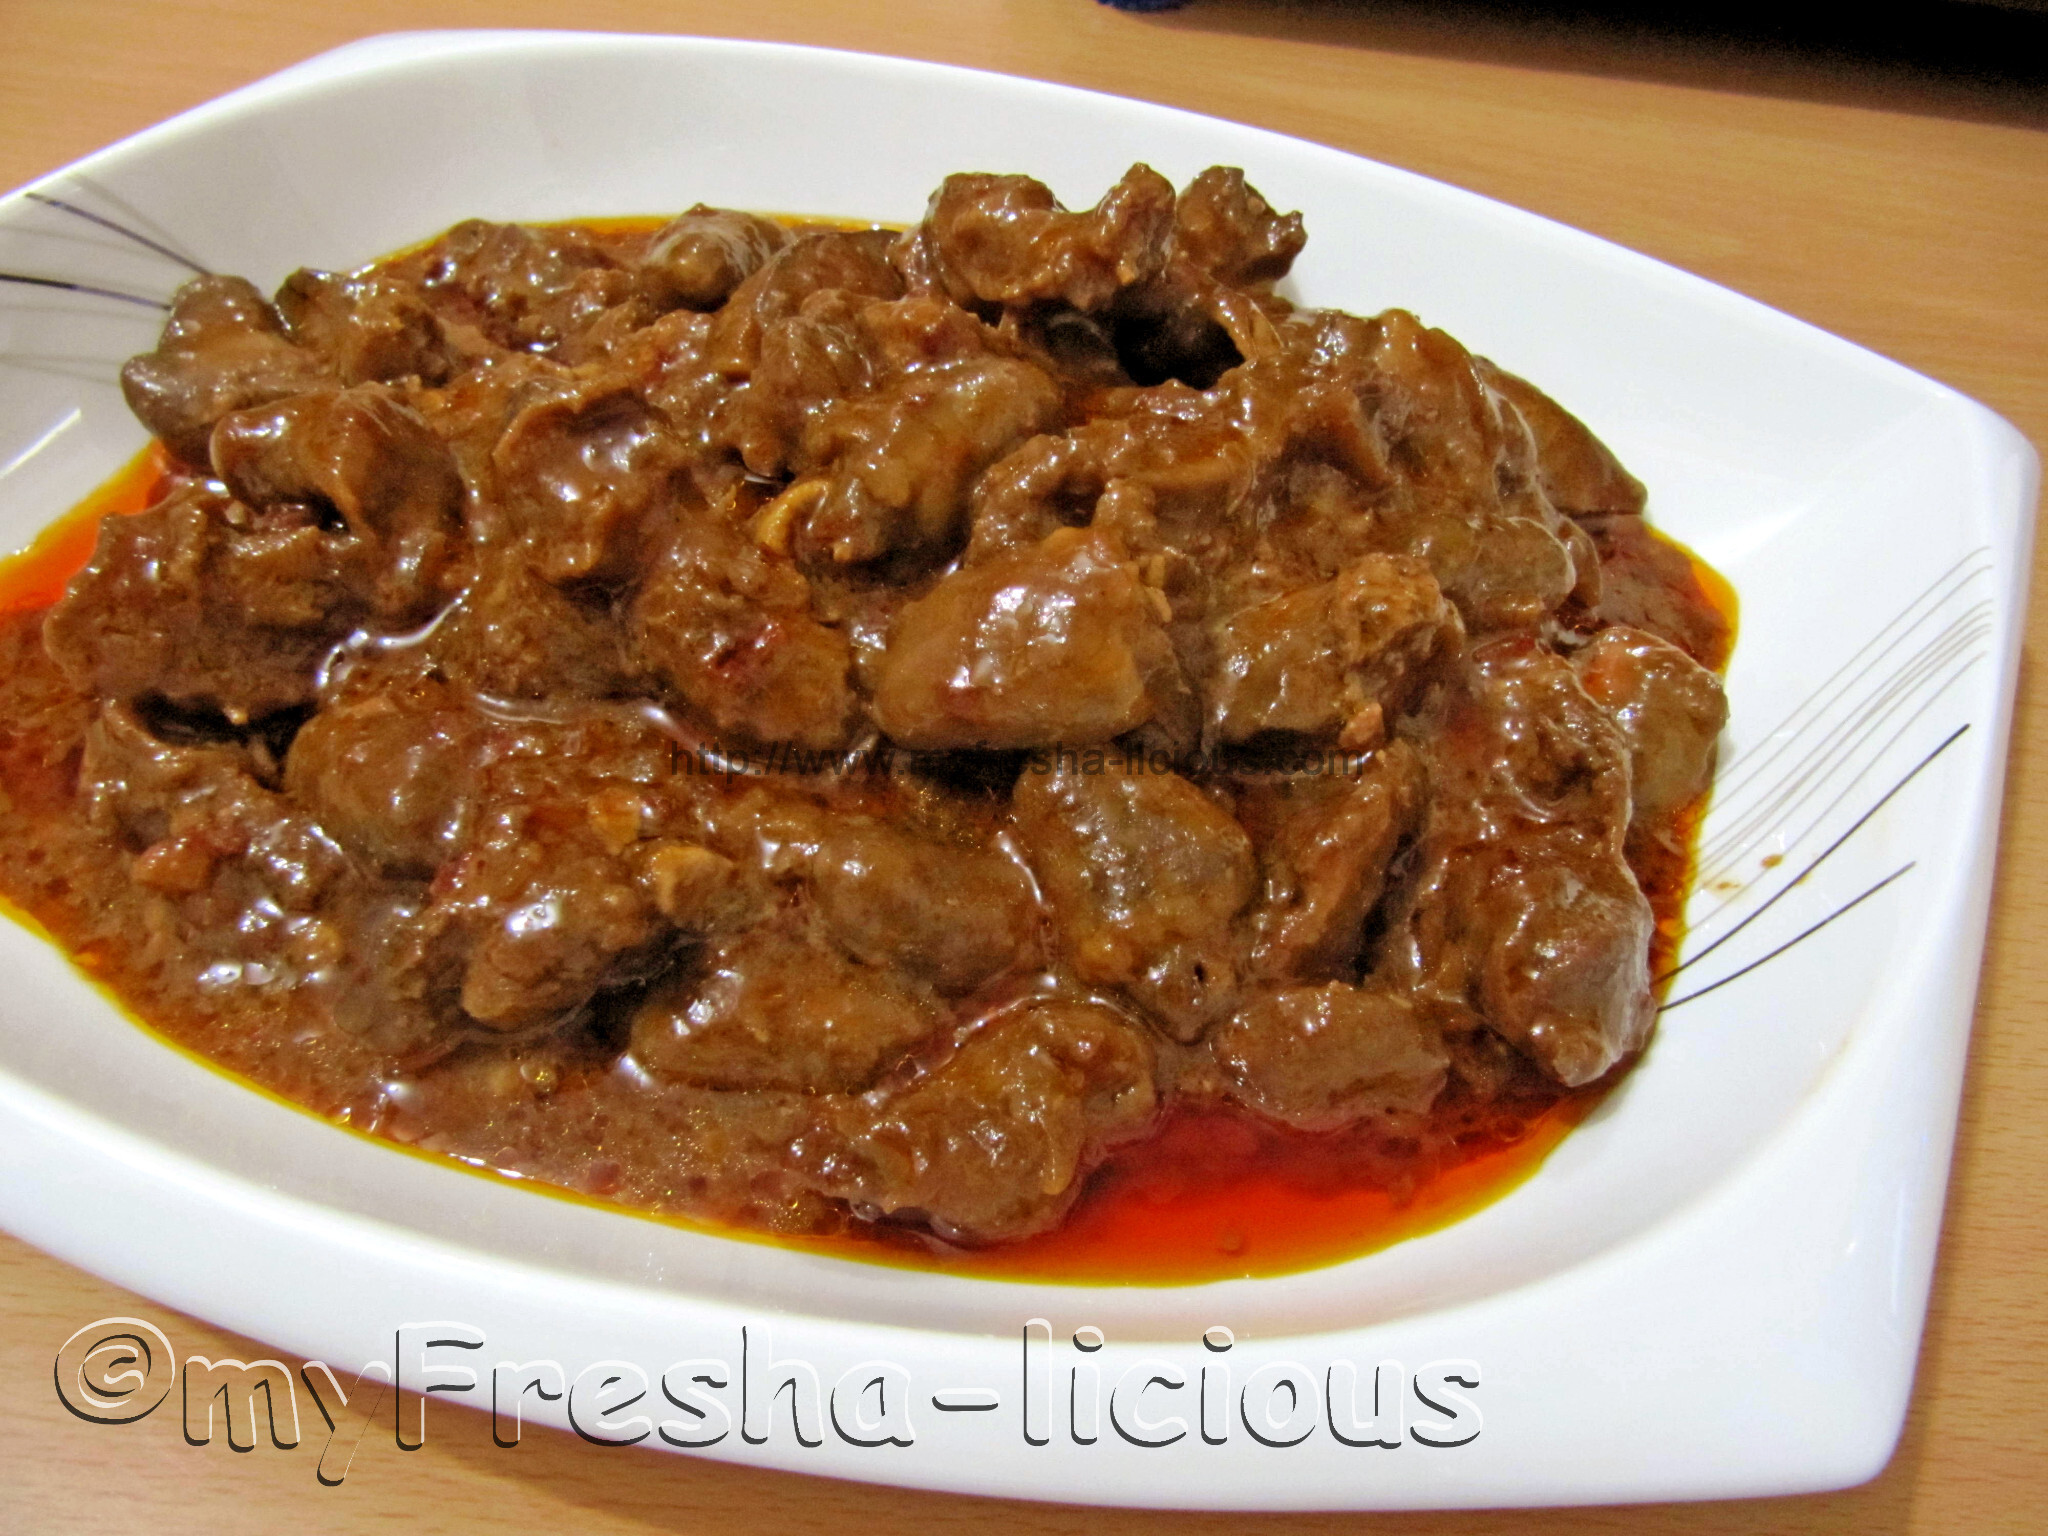 Hot & Spicy Adobong Atay at Balunbalunan ng Manok